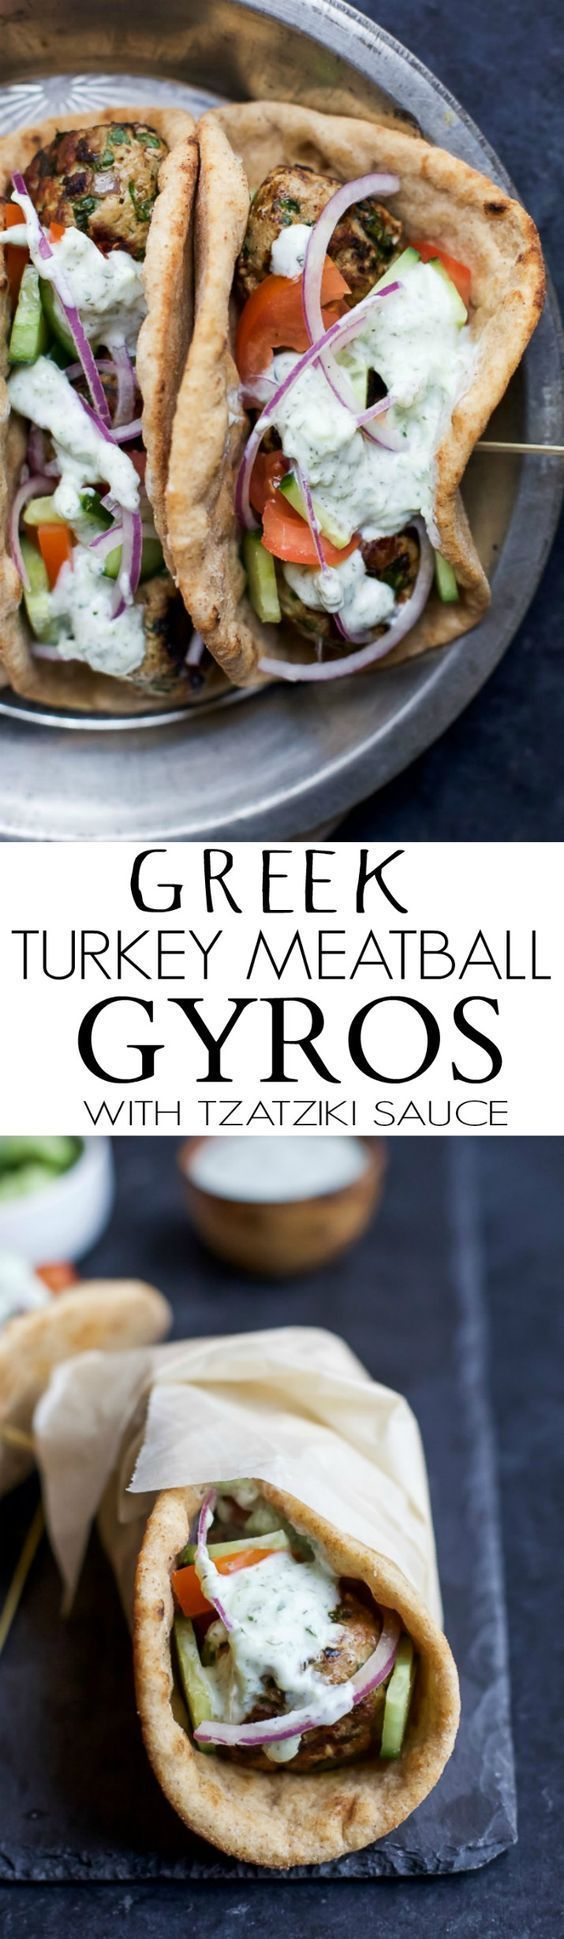 30 Minute Greek Turkey Meatball Gyros topped with a classic Tzatziki Sauce you'll want to swim in! These Gyros are the perfect healthy dinner option for the family and clock in 429 calories! | http://joyfulhealthyeats.com